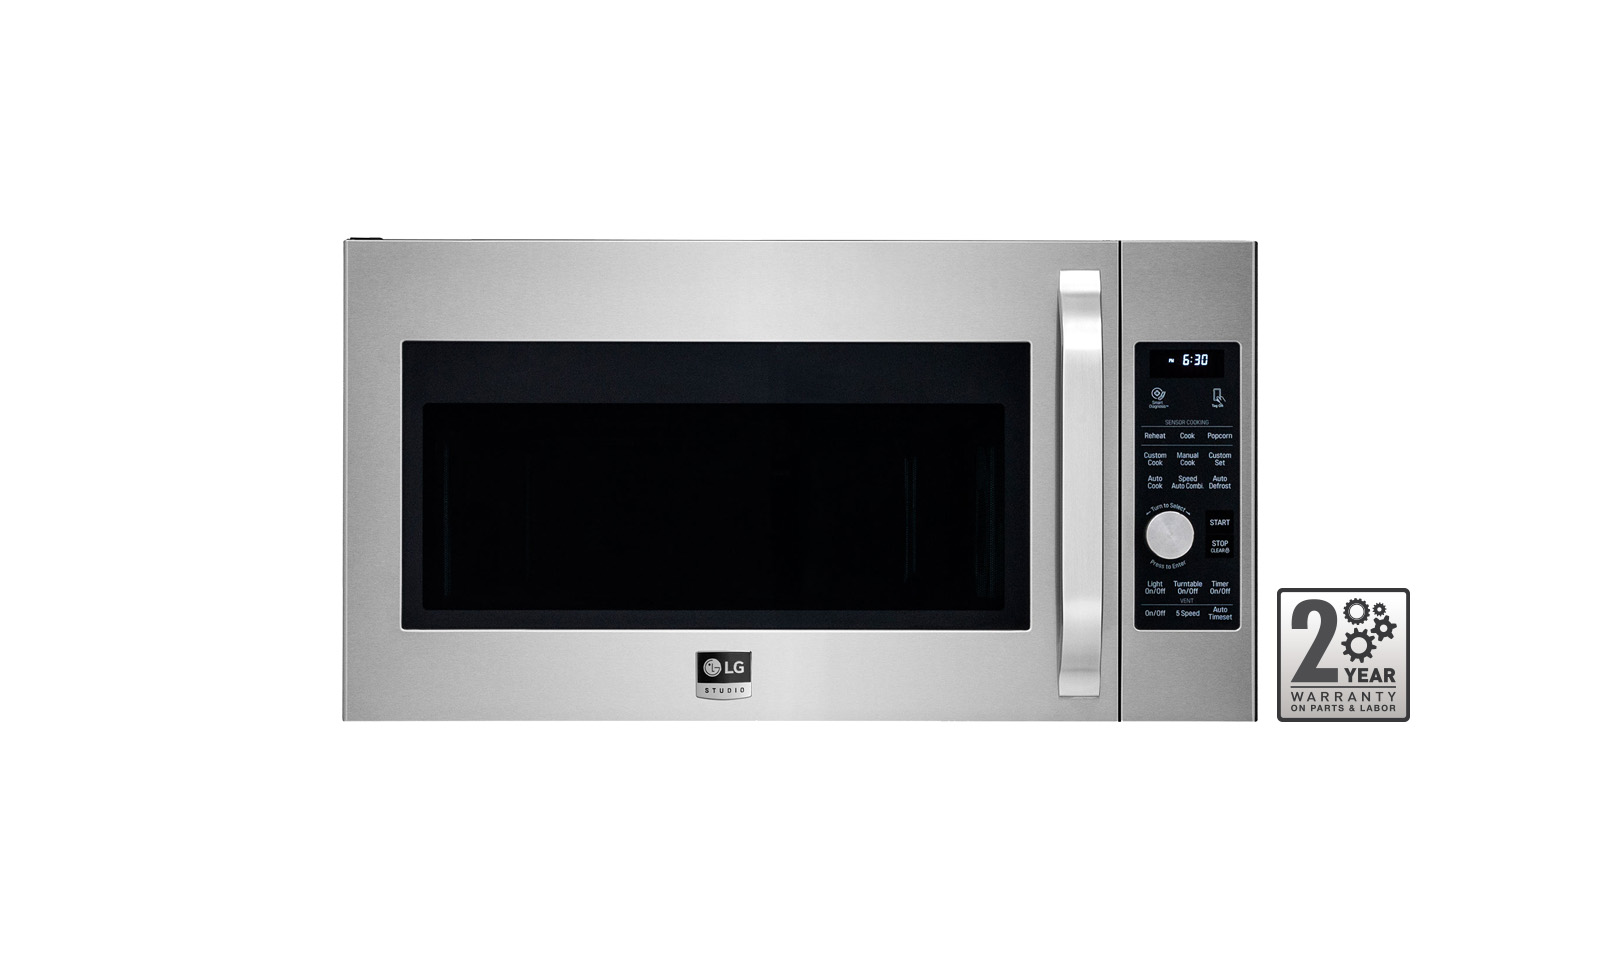 Whirlpool white ice costco canada - Lg Studio 1 7cuft Over The Range Microwave Oven In Stainless Steel Lsmc3086st